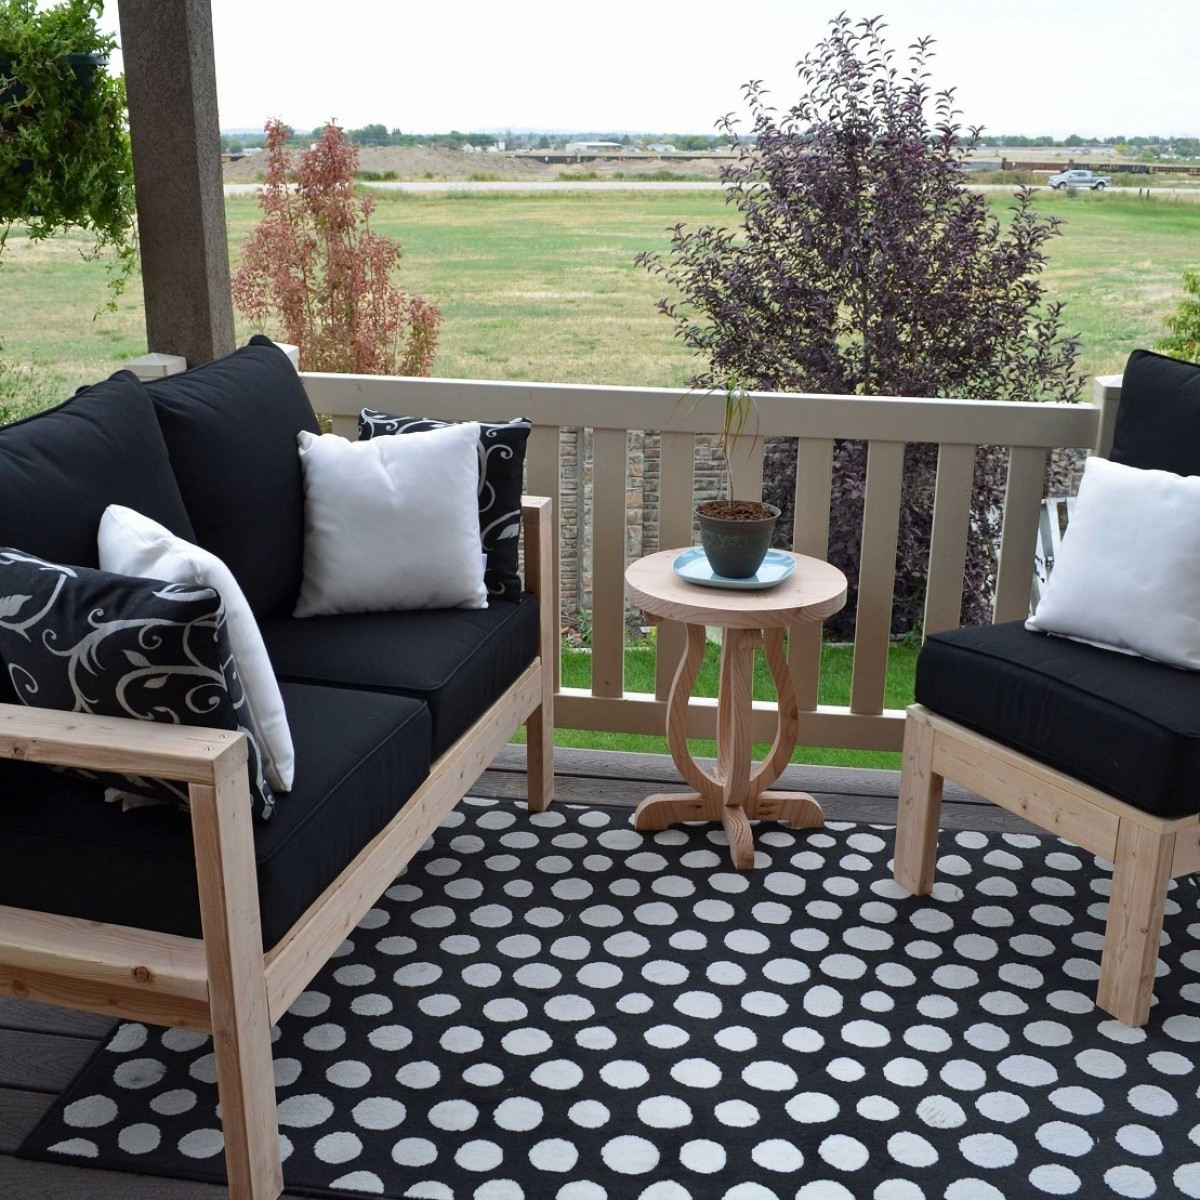 Well Known Patio Conversation Sets Under 200 With 56 Patio Sets Under 200, Extraordinary Patio Furniture Under $200 Up (View 11 of 15)